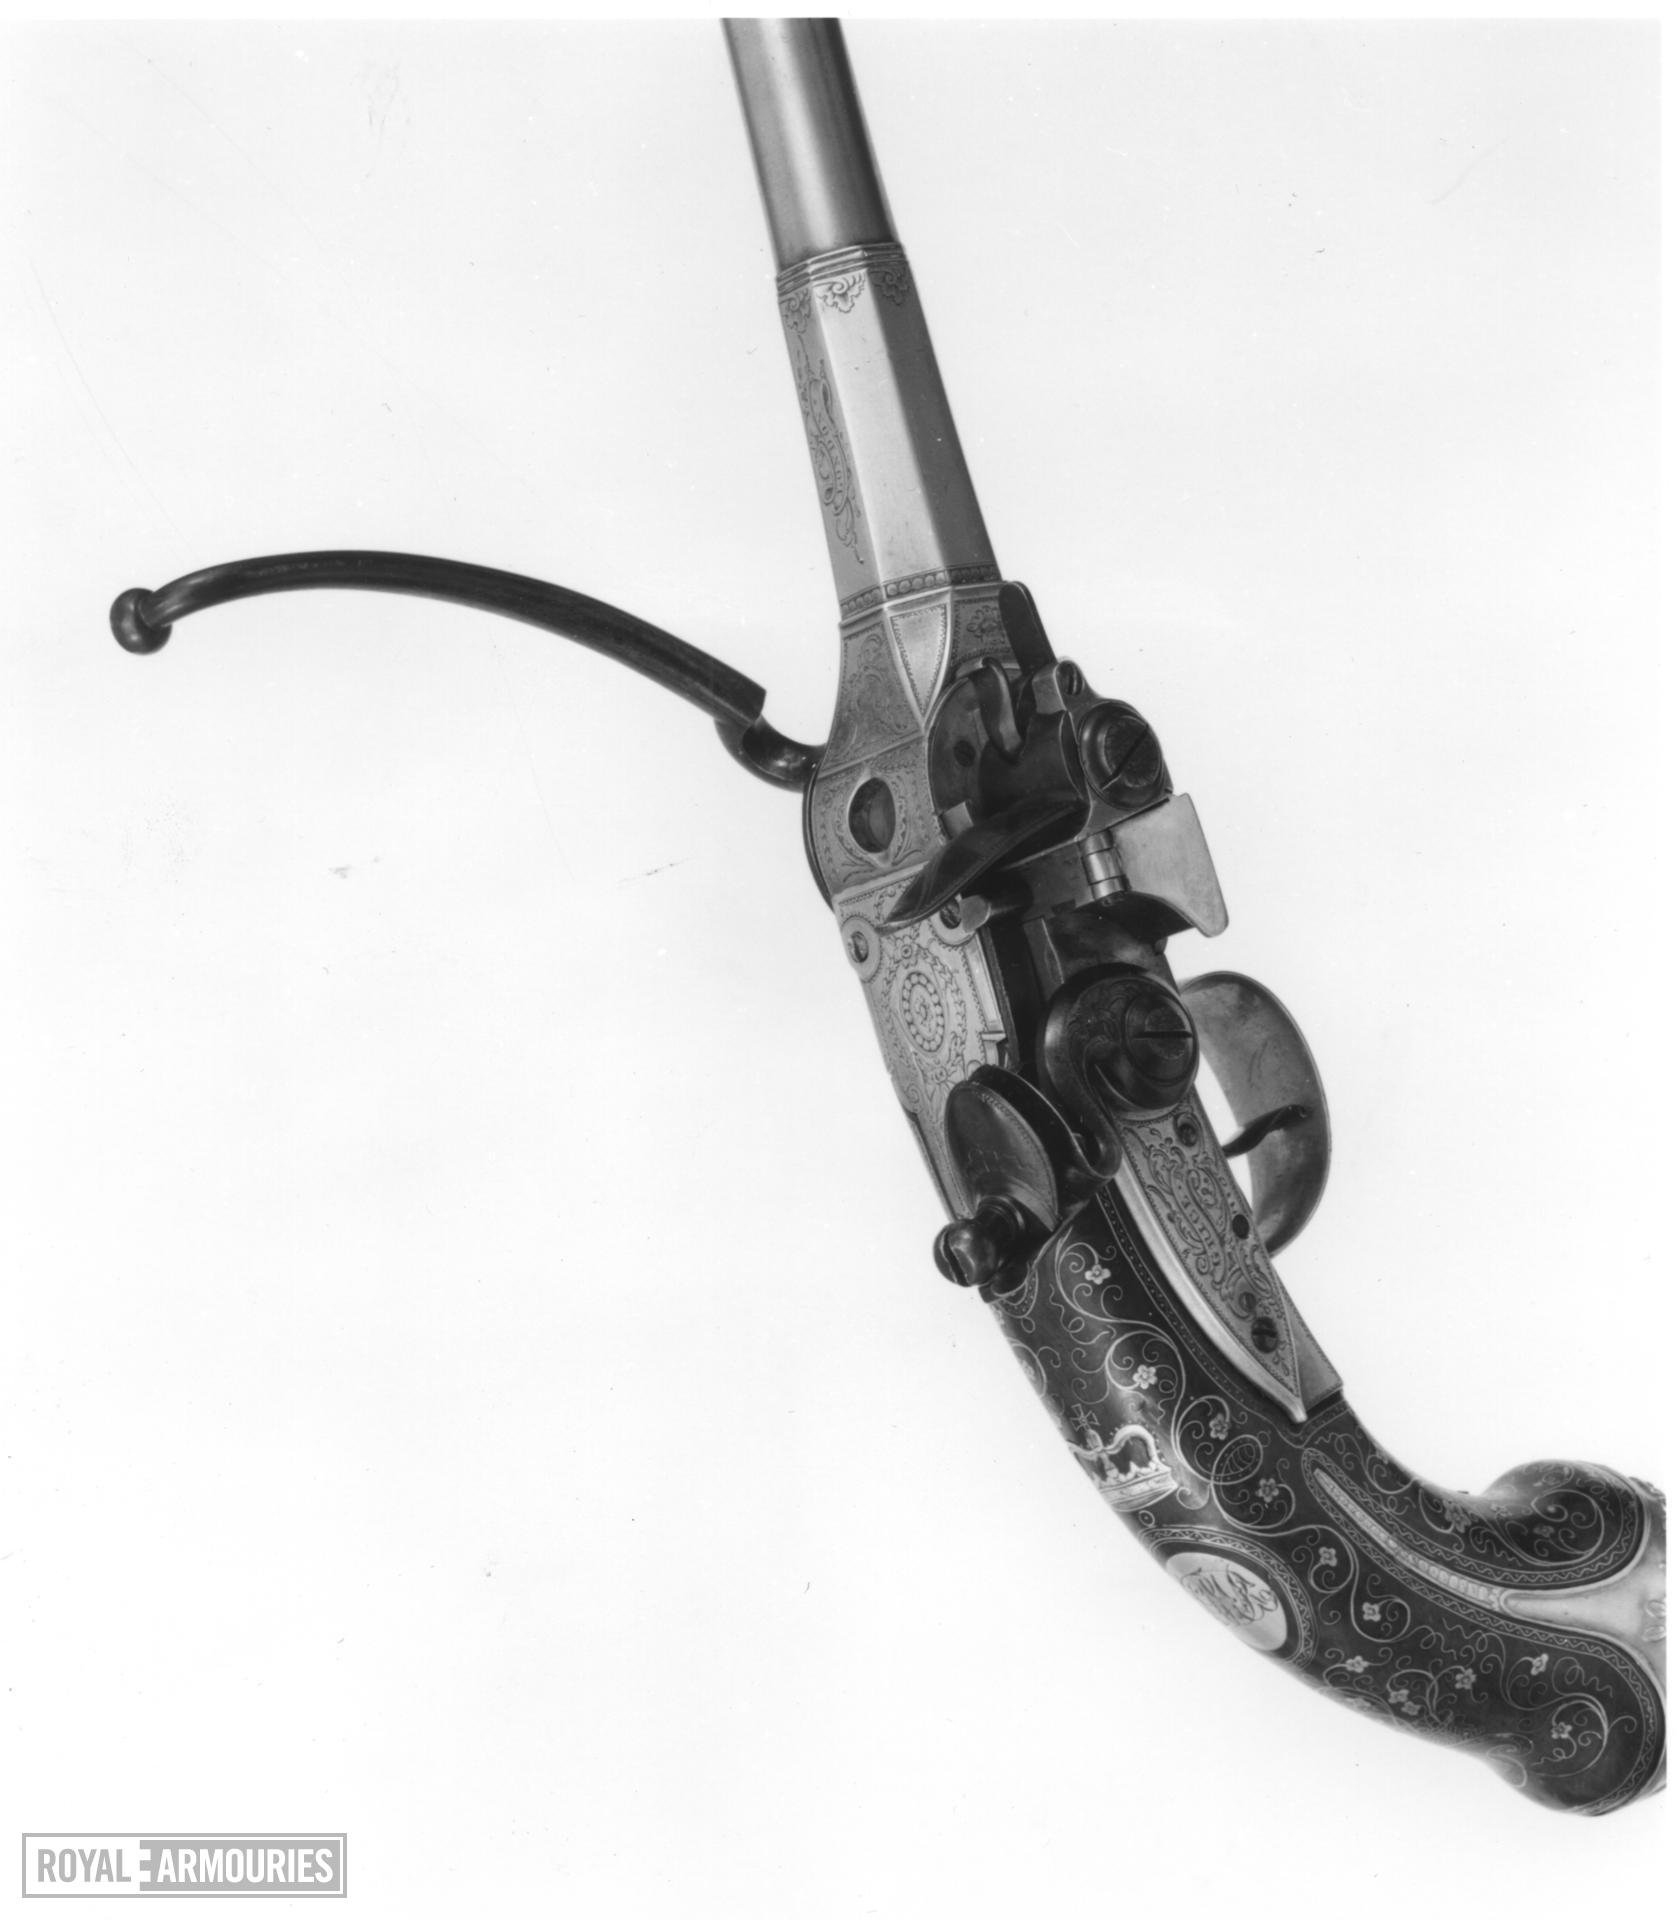 Flintlock breech-loading magazine pistol - Lorenzoni System Flintlock breech-loading magazine Lorenzoni pistol by Grice, Britain, about 1780.